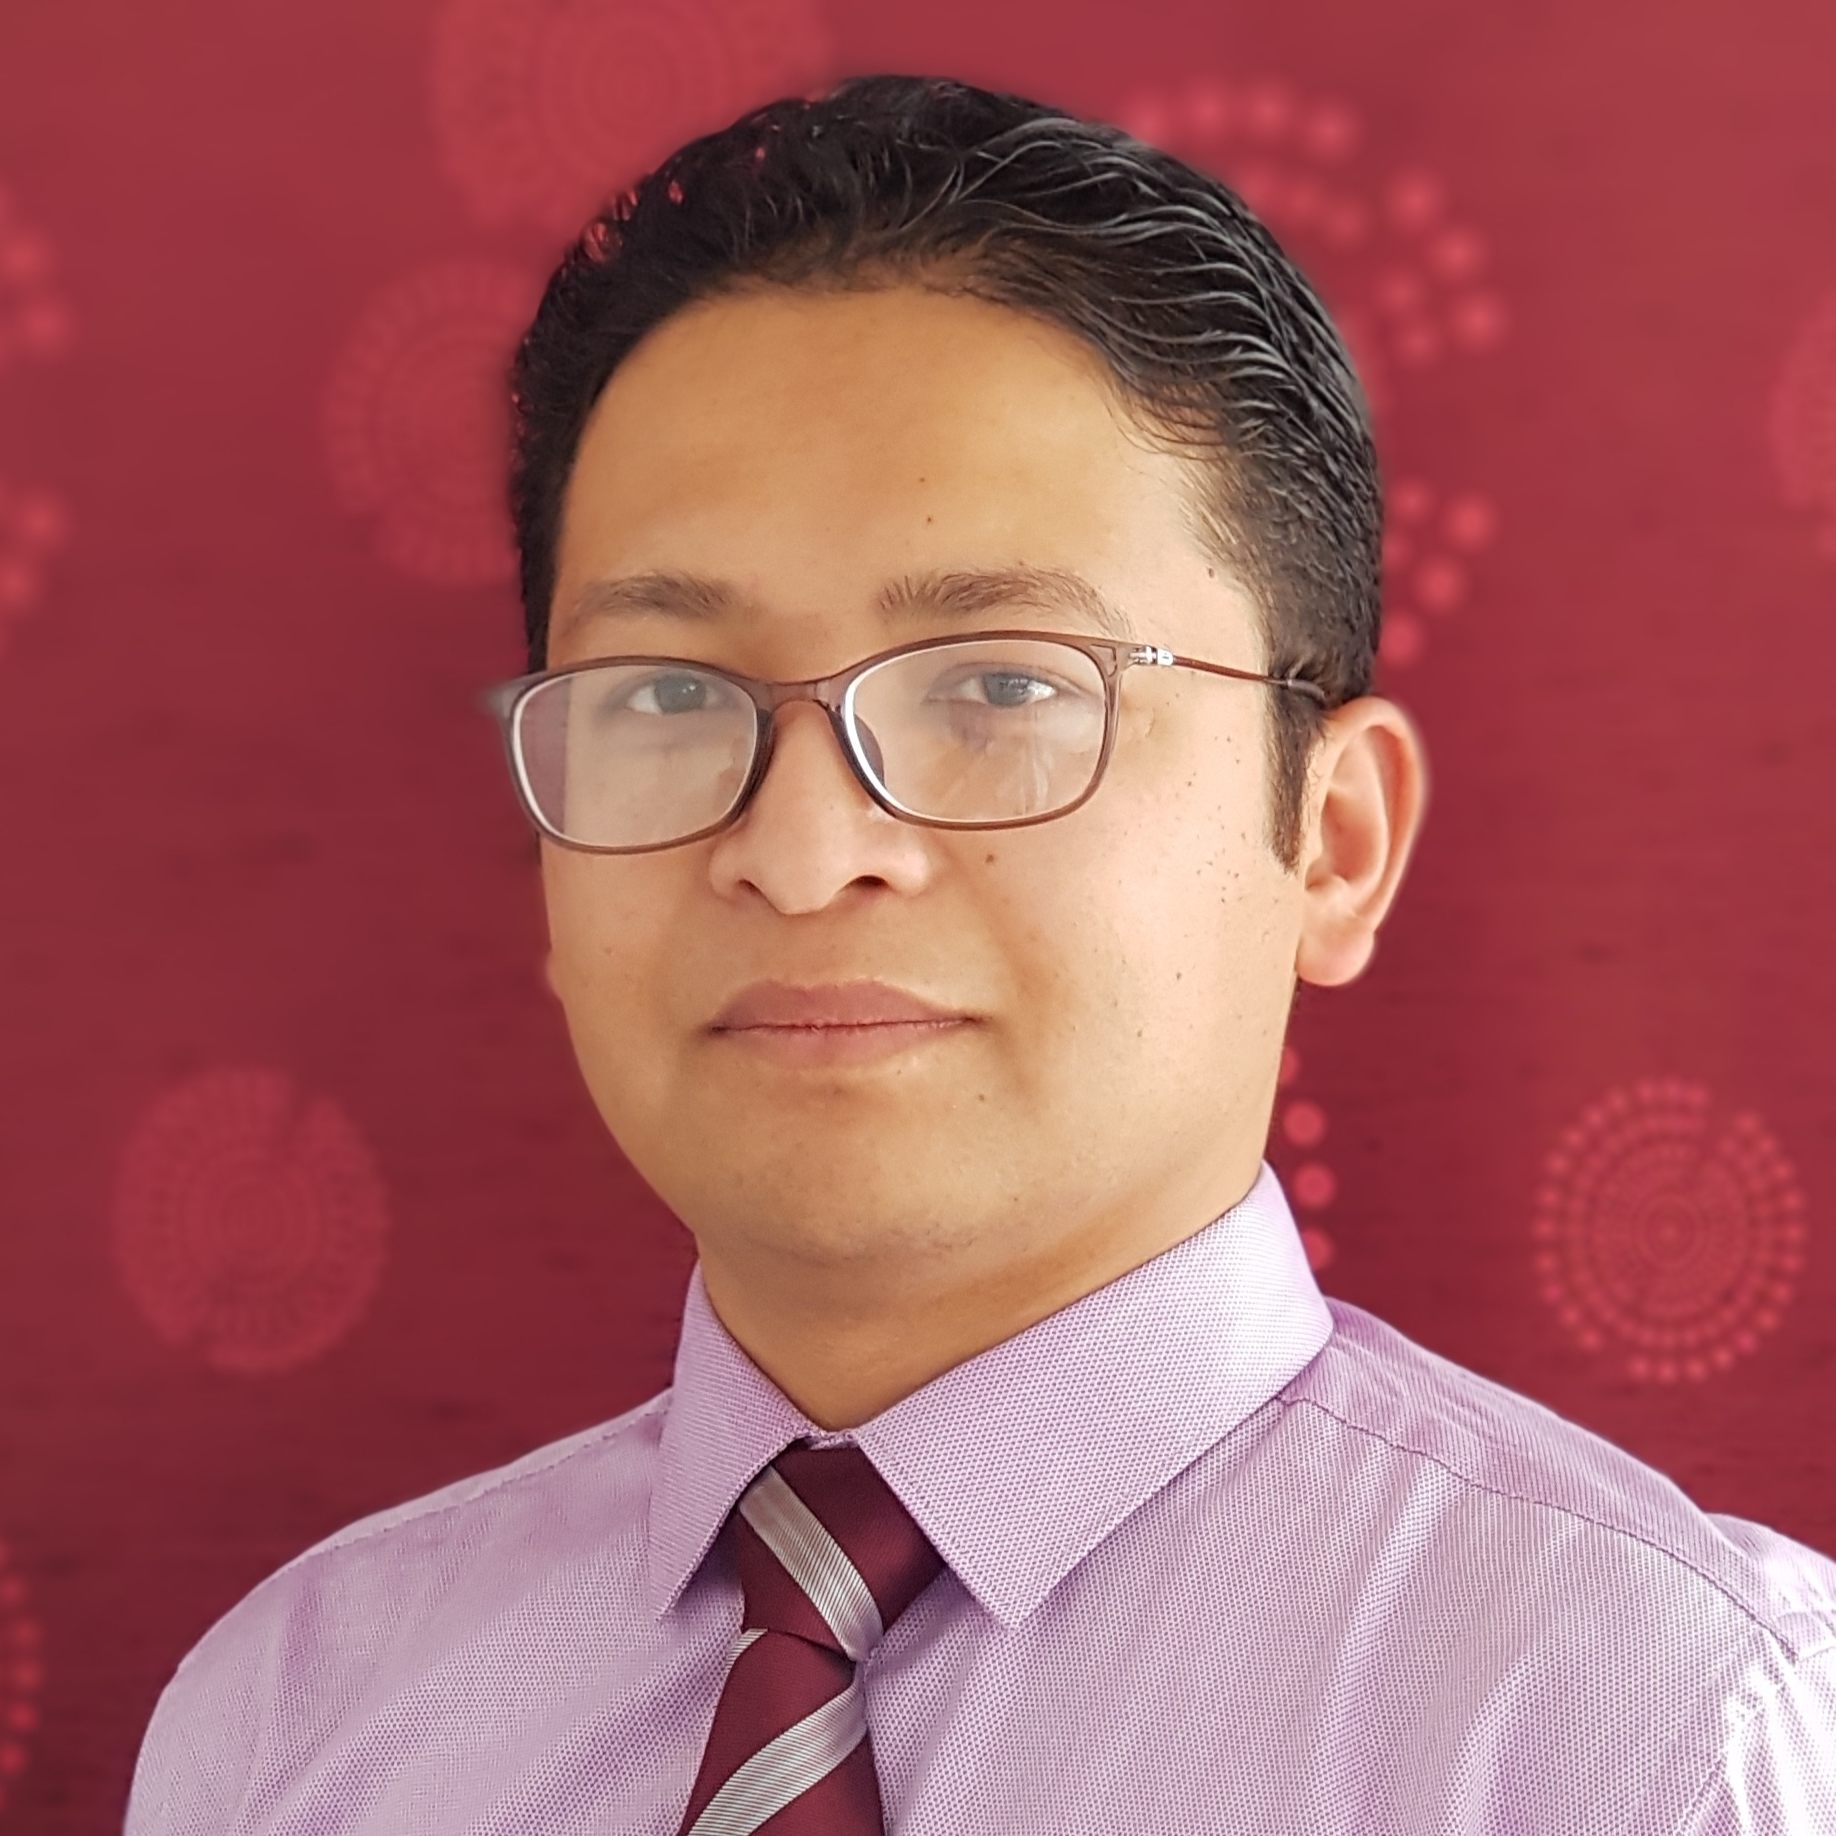 Photograph of Dr Sudeep Shrestha